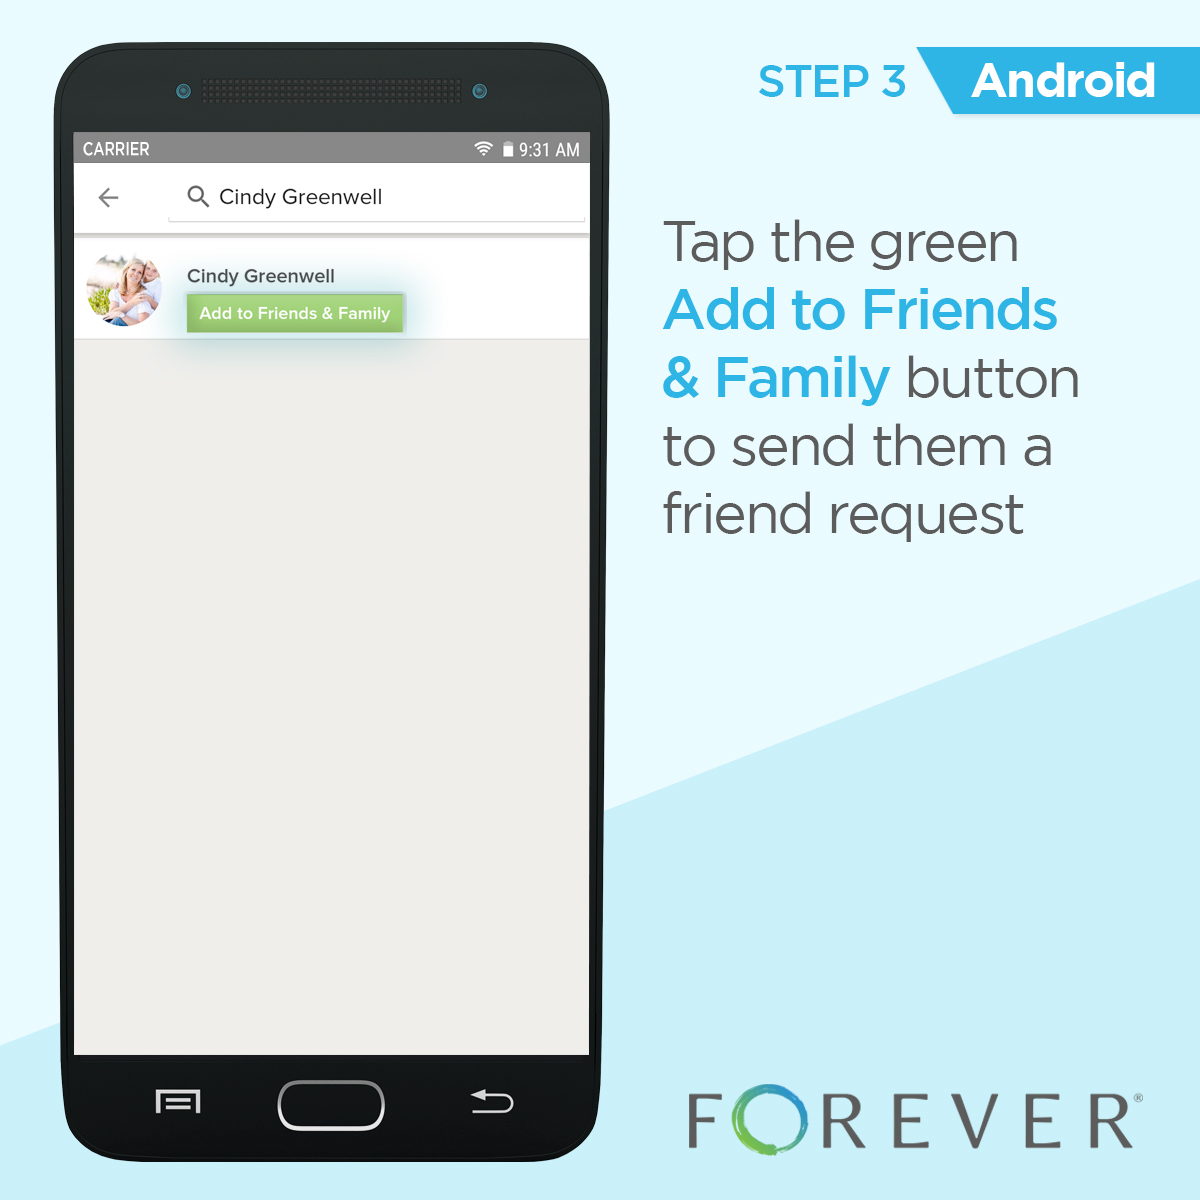 3_FriendsFamilySearch_Android_MM.jpg